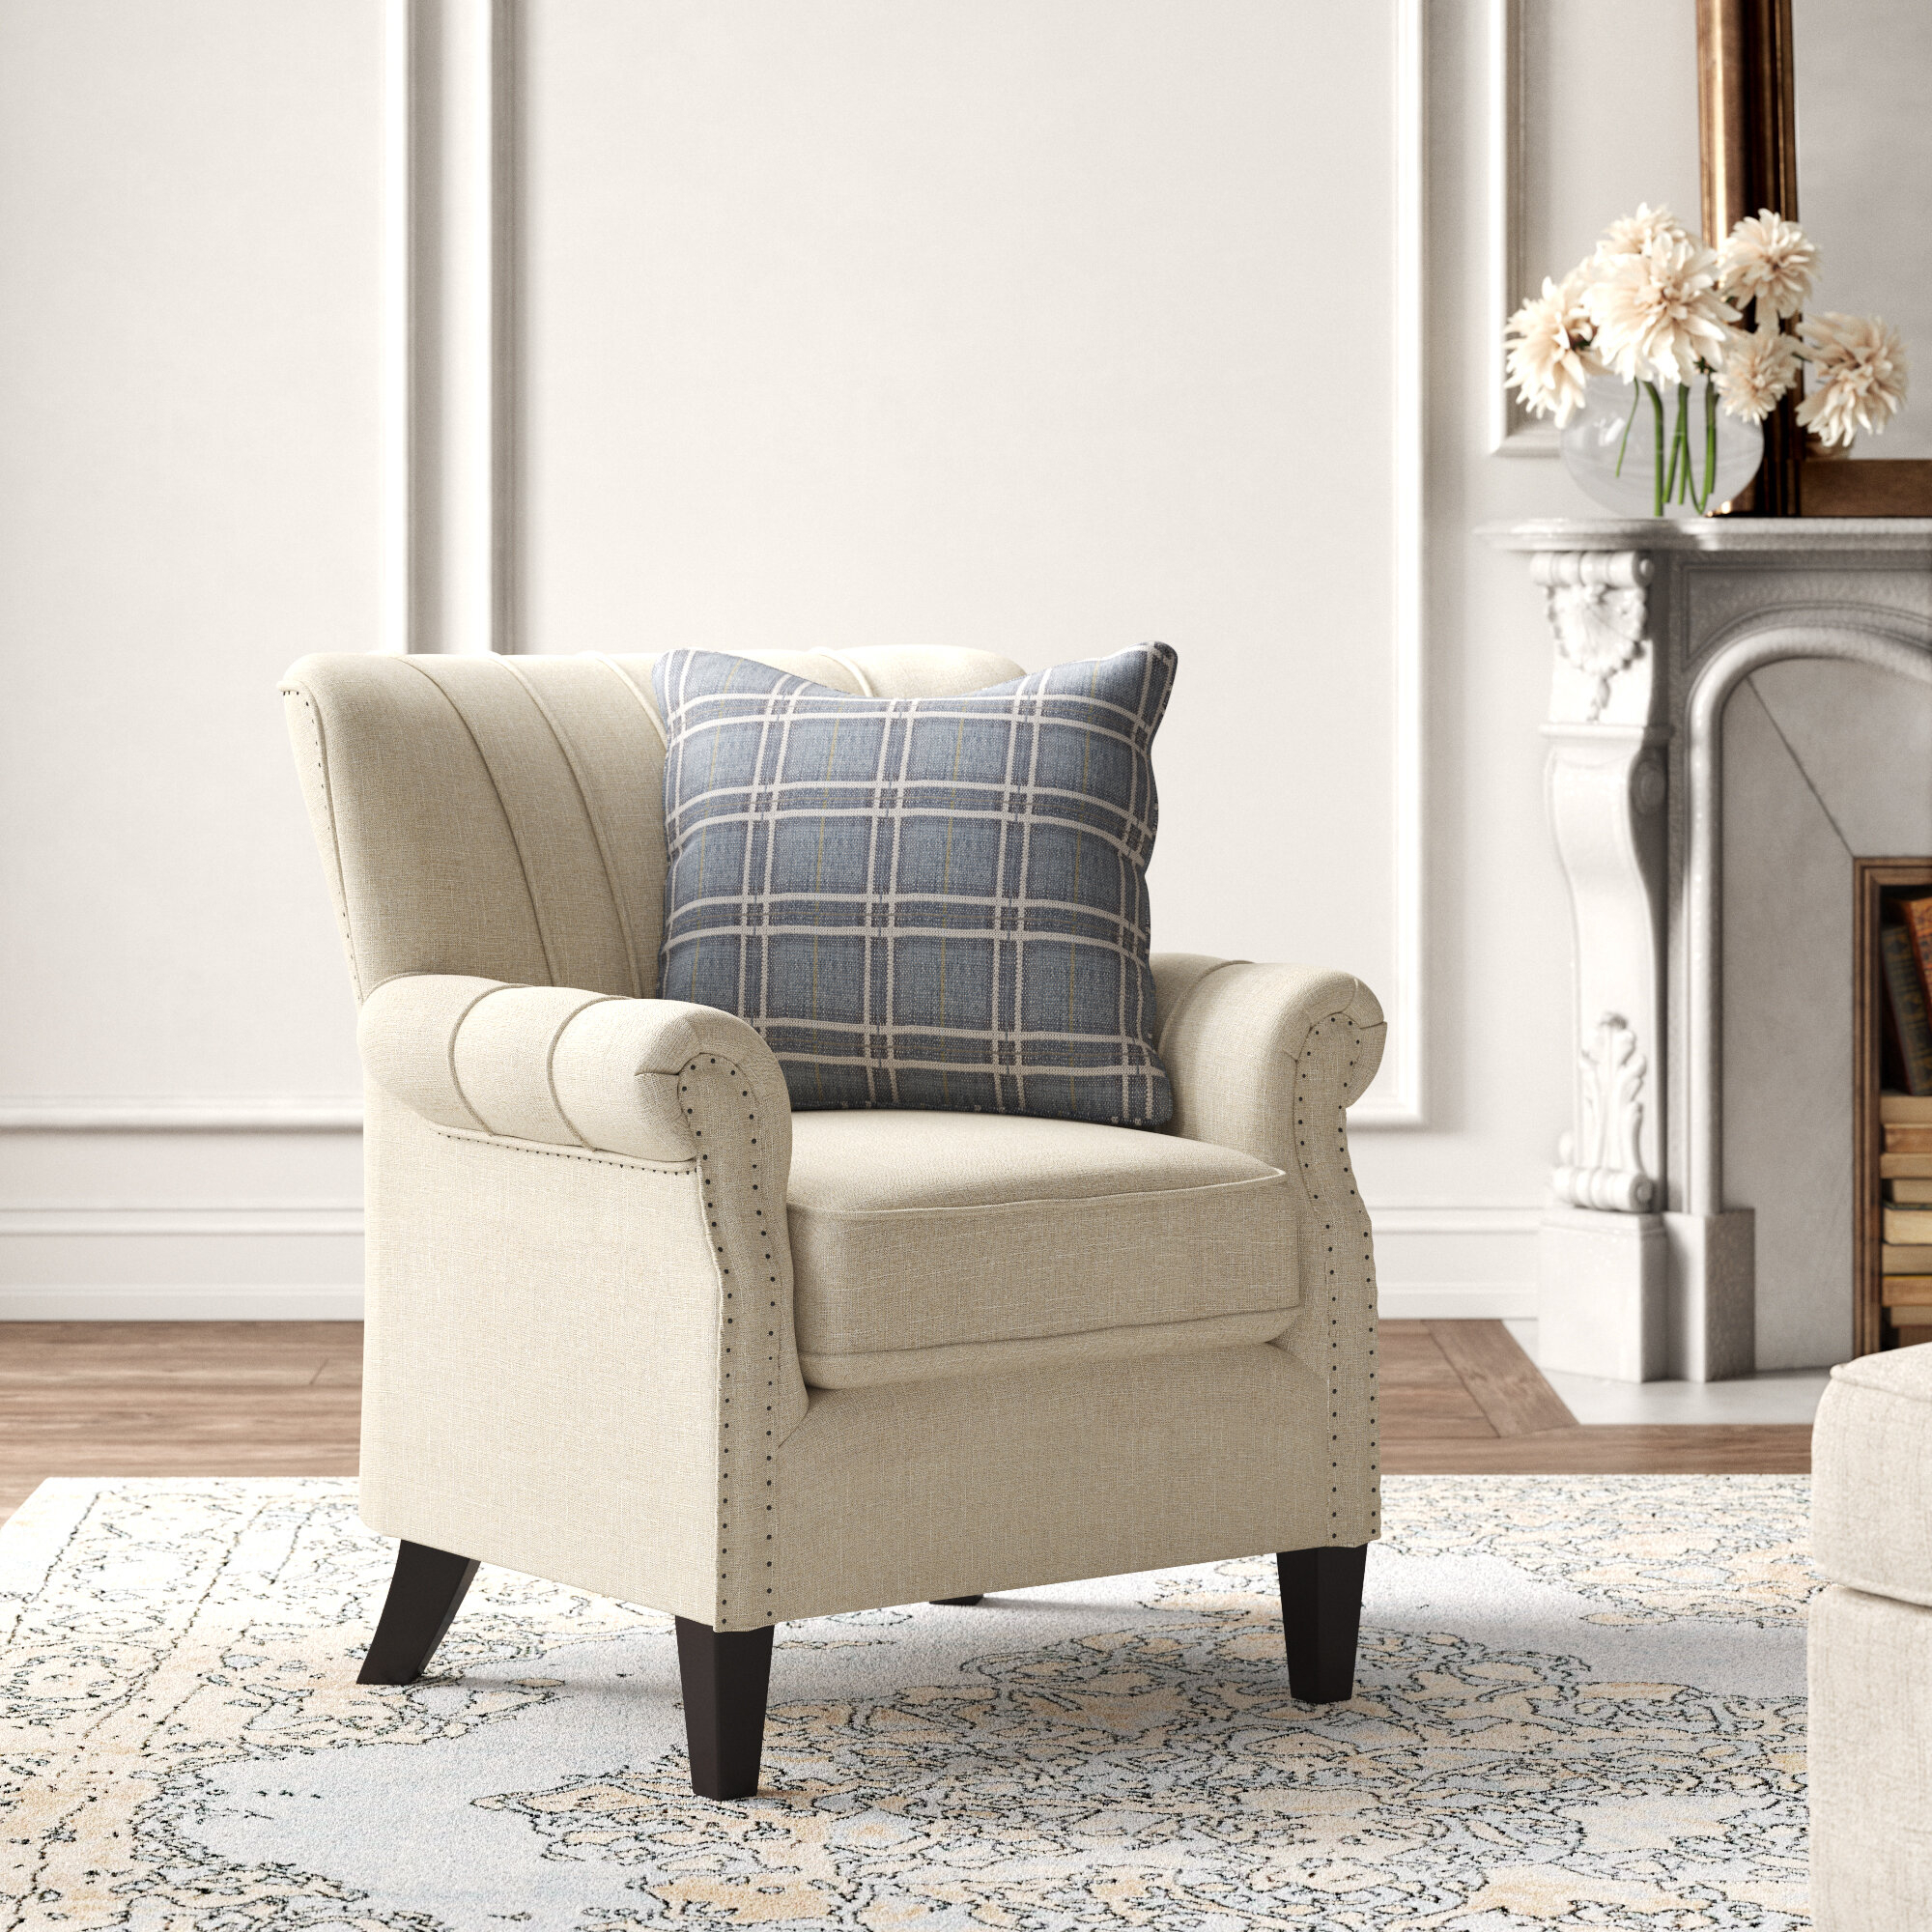 Armchairs | Wayfair In Oglesby Armchairs (View 11 of 15)